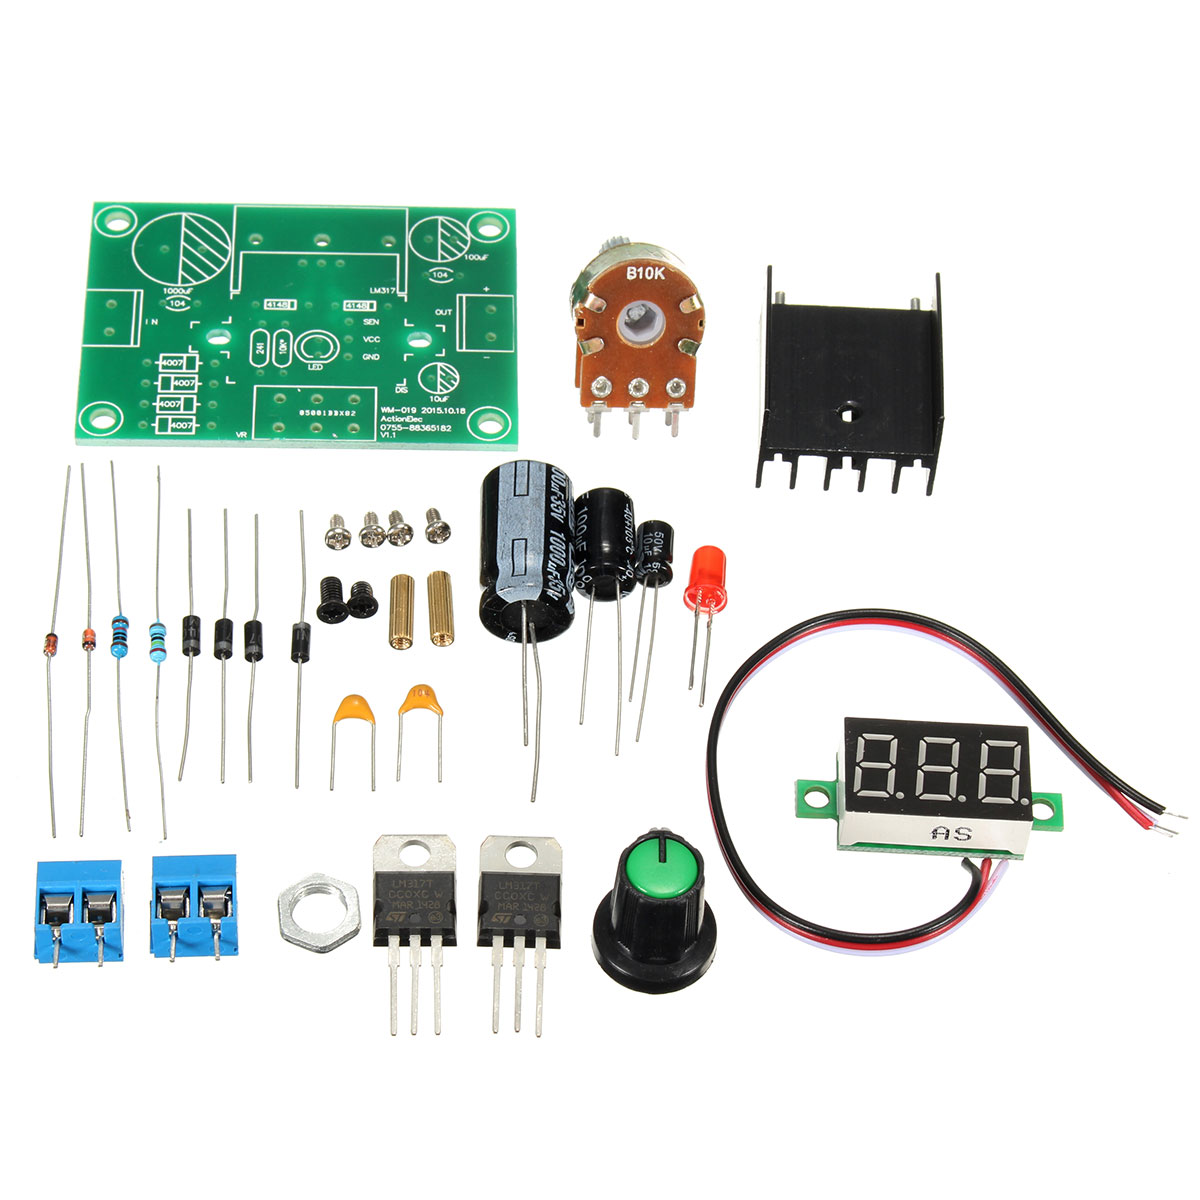 Lm317 Adjustable Voltage Regulator Diy Led Step Down Module Kit Ac Switching Circuit Using Schematic Dc To 27v 40v In Electronics Stocks From Electronic Components Supplies On